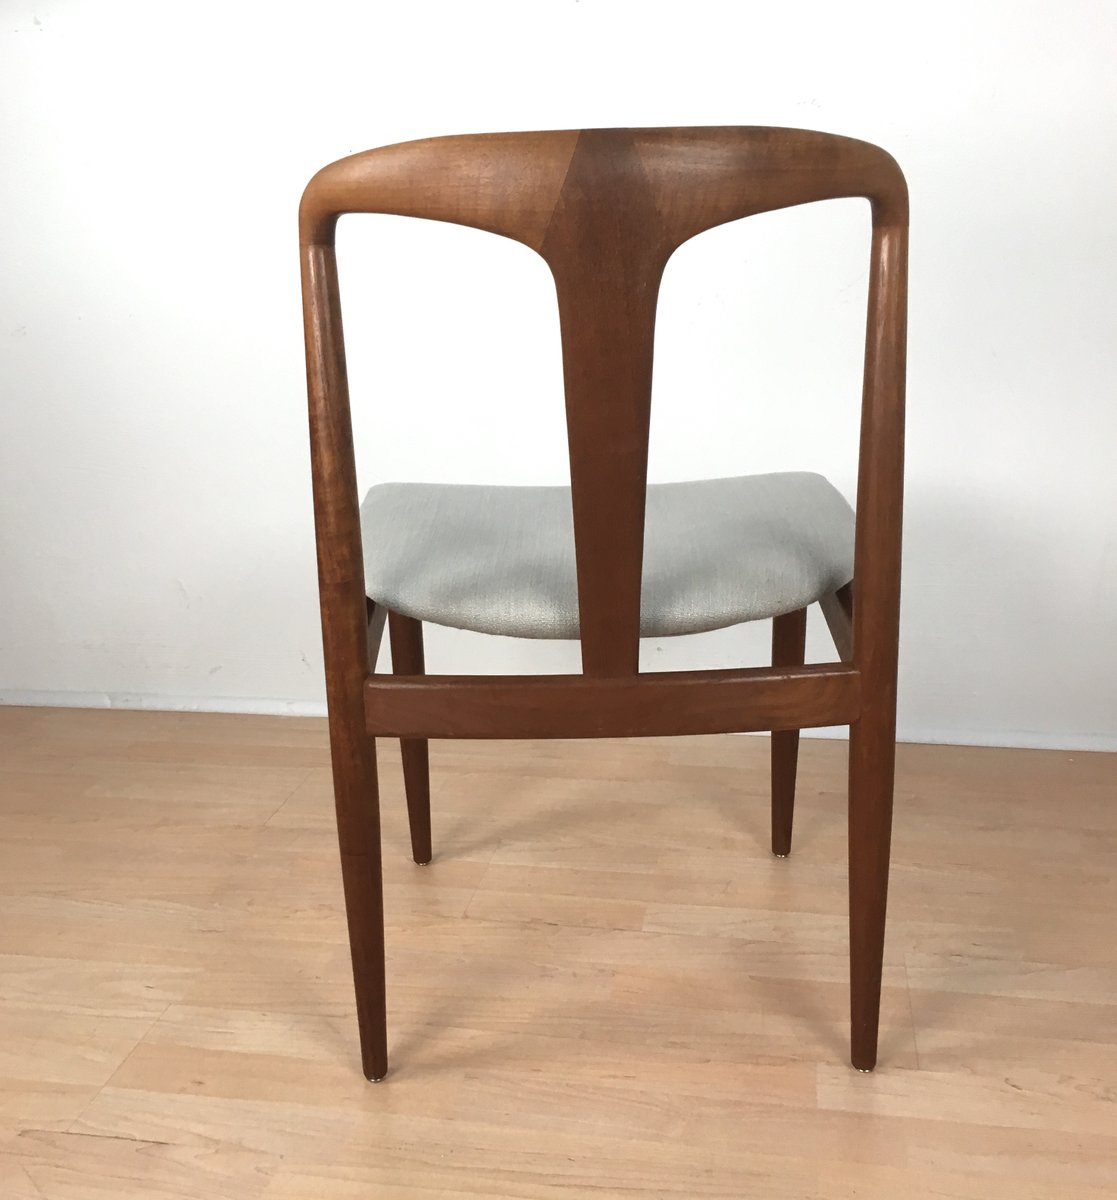 Vintage danish juliane chair by johannes andersen for for Classic mid century chairs